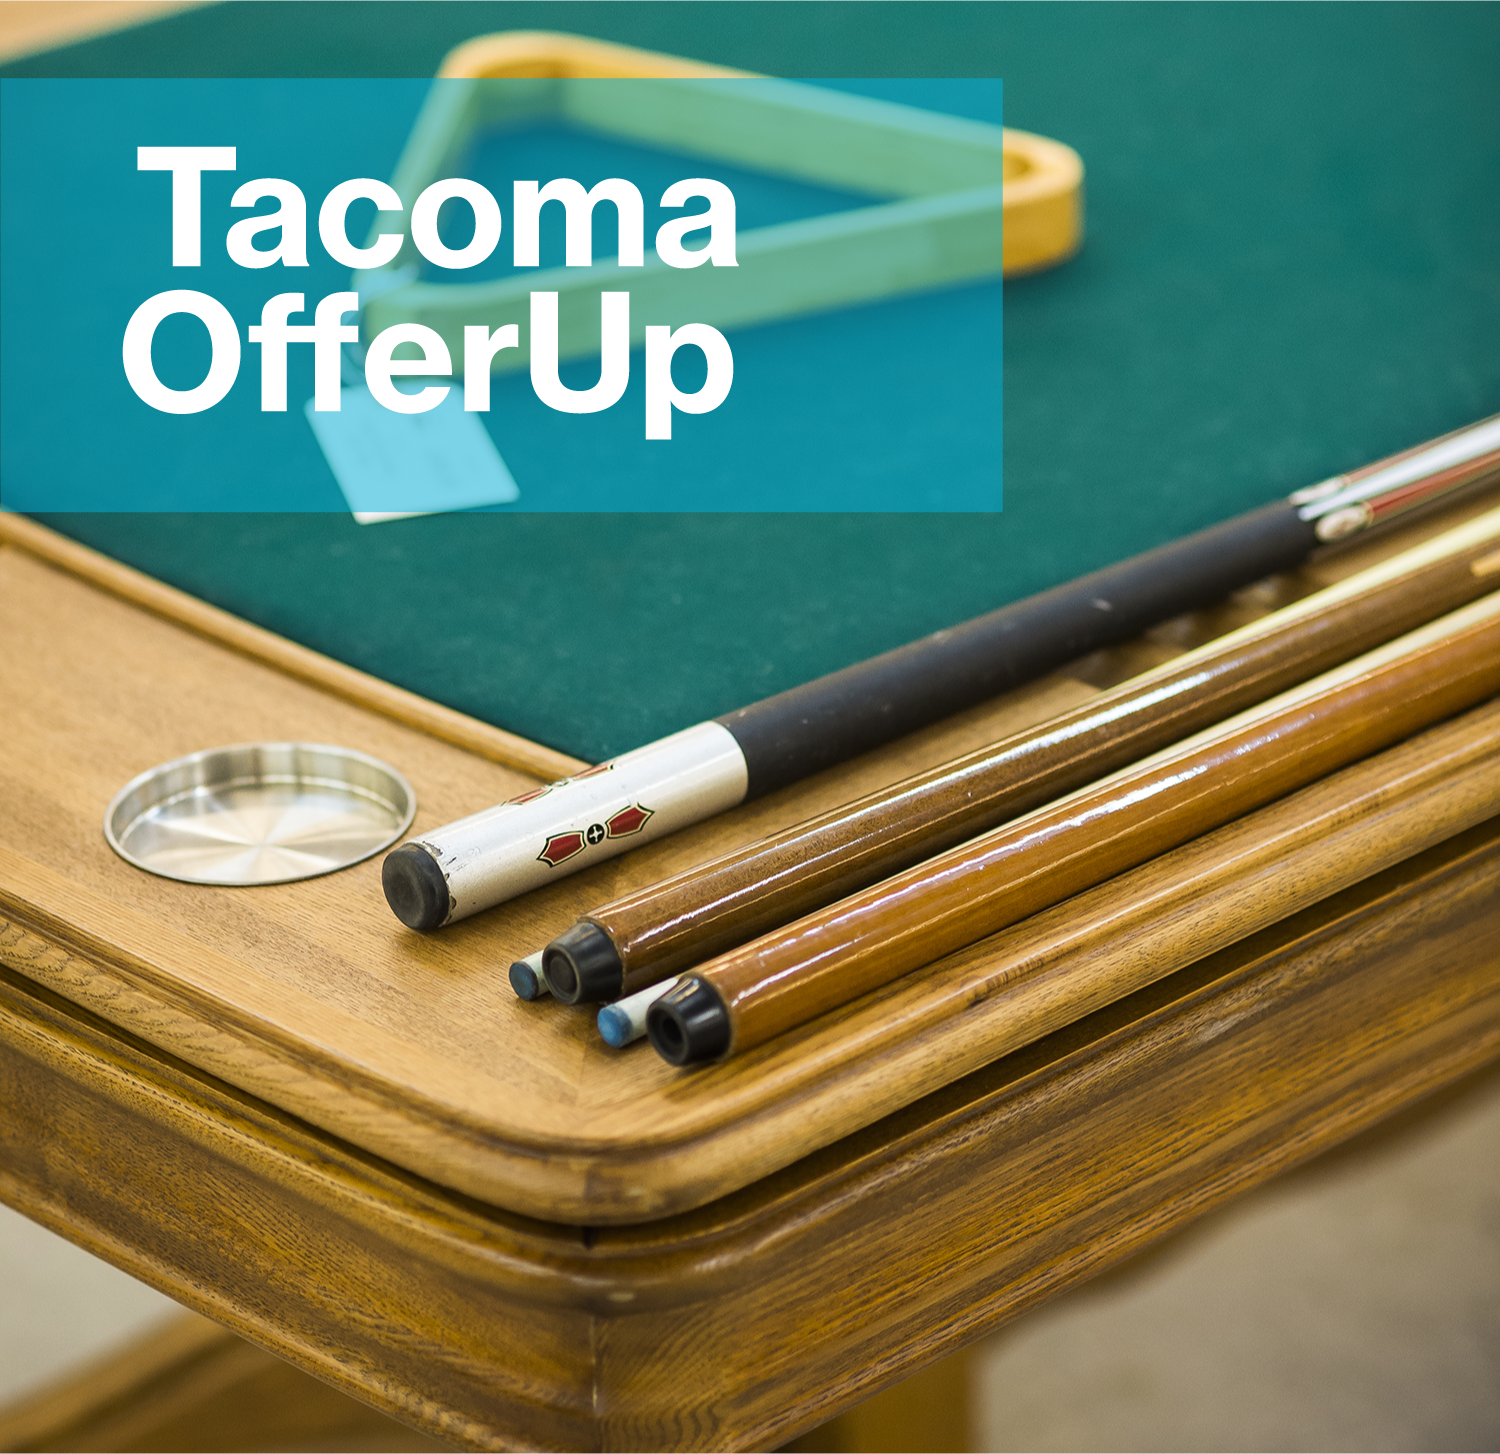 Tacoma OfferUp